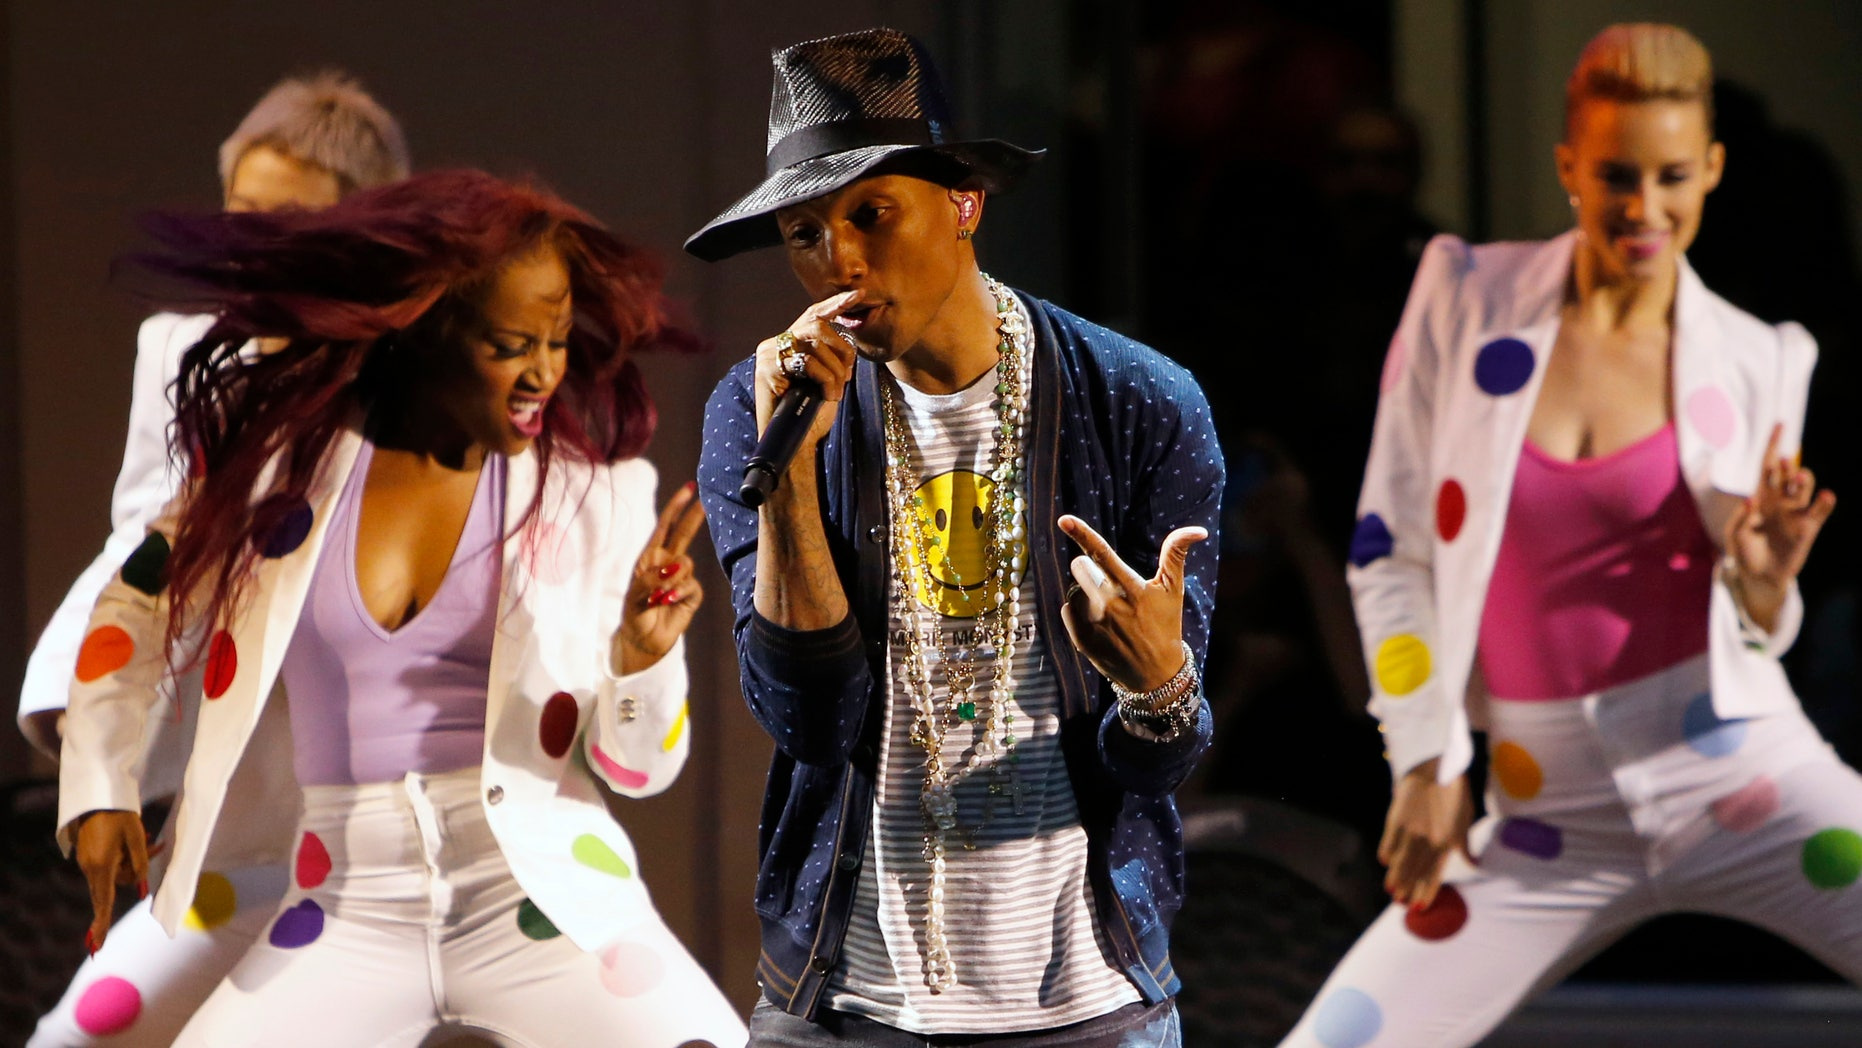 """May 26, 2014. Singer Pharrell Williams performs on stage during a private concert for the exhibition """"GIRL"""" at the Perrotin Gallery in Paris."""